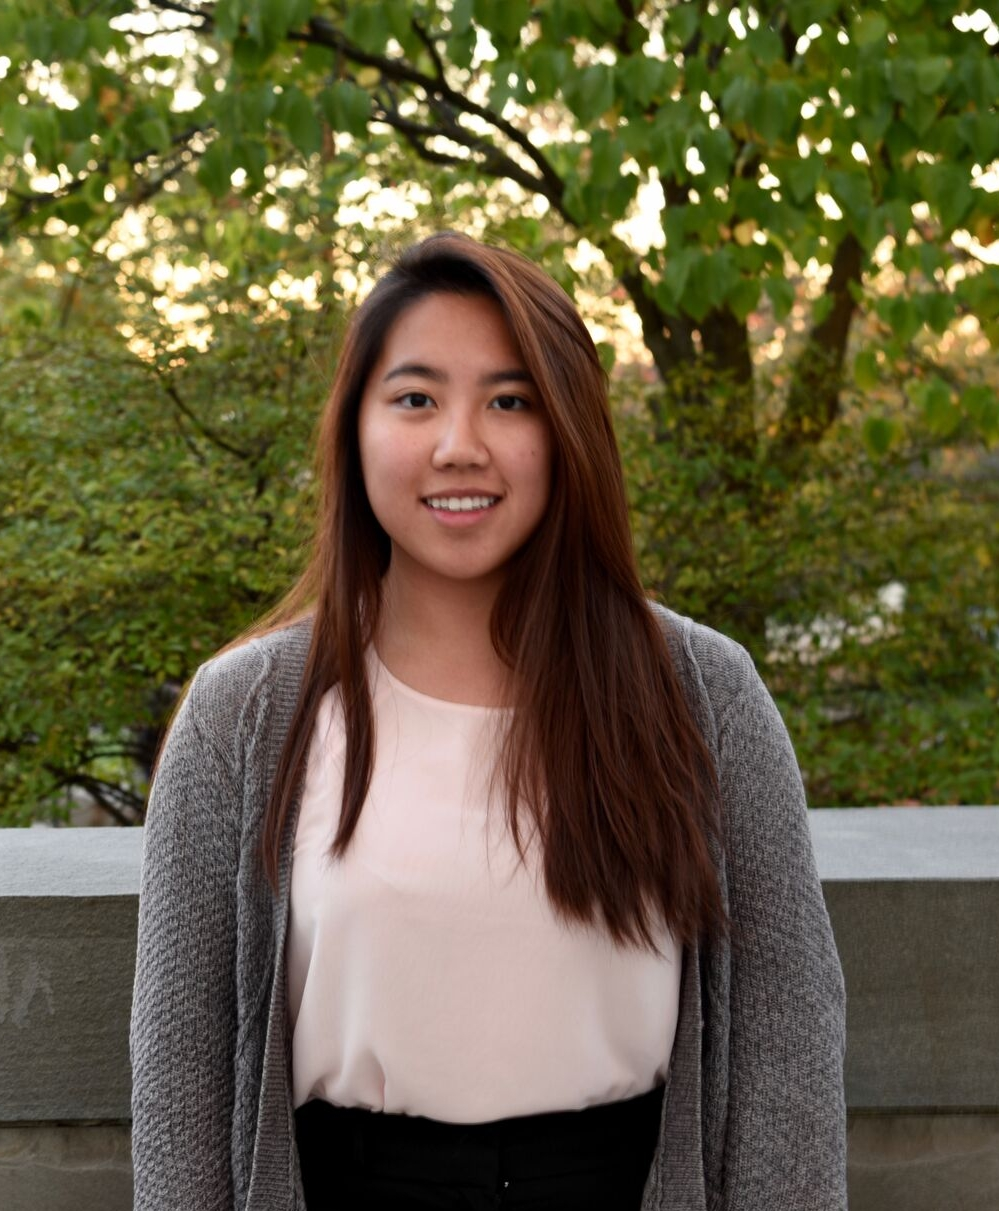 Michelle Huang '20 - I am a sophomore majoring in Applied Economics and Management with an intended concentration in accounting and business analytics. I joined CBR's design team because of my interest in graphic design. I am also treasurer and a performance member of Phenomenon Step Team.